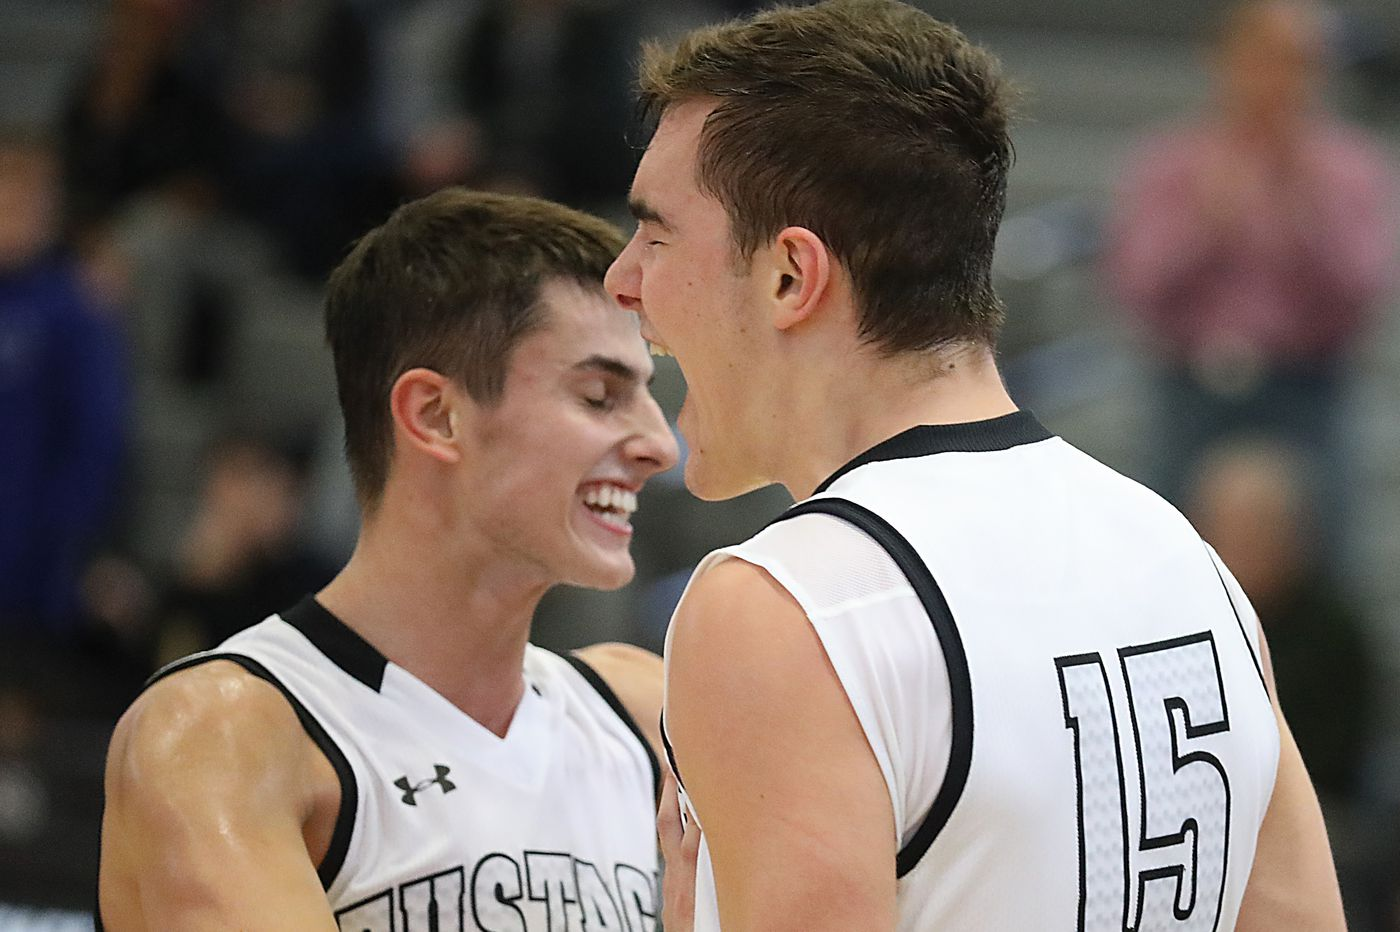 Bishop Eustace's David Cross is doing more than ever for the boys' basketball team